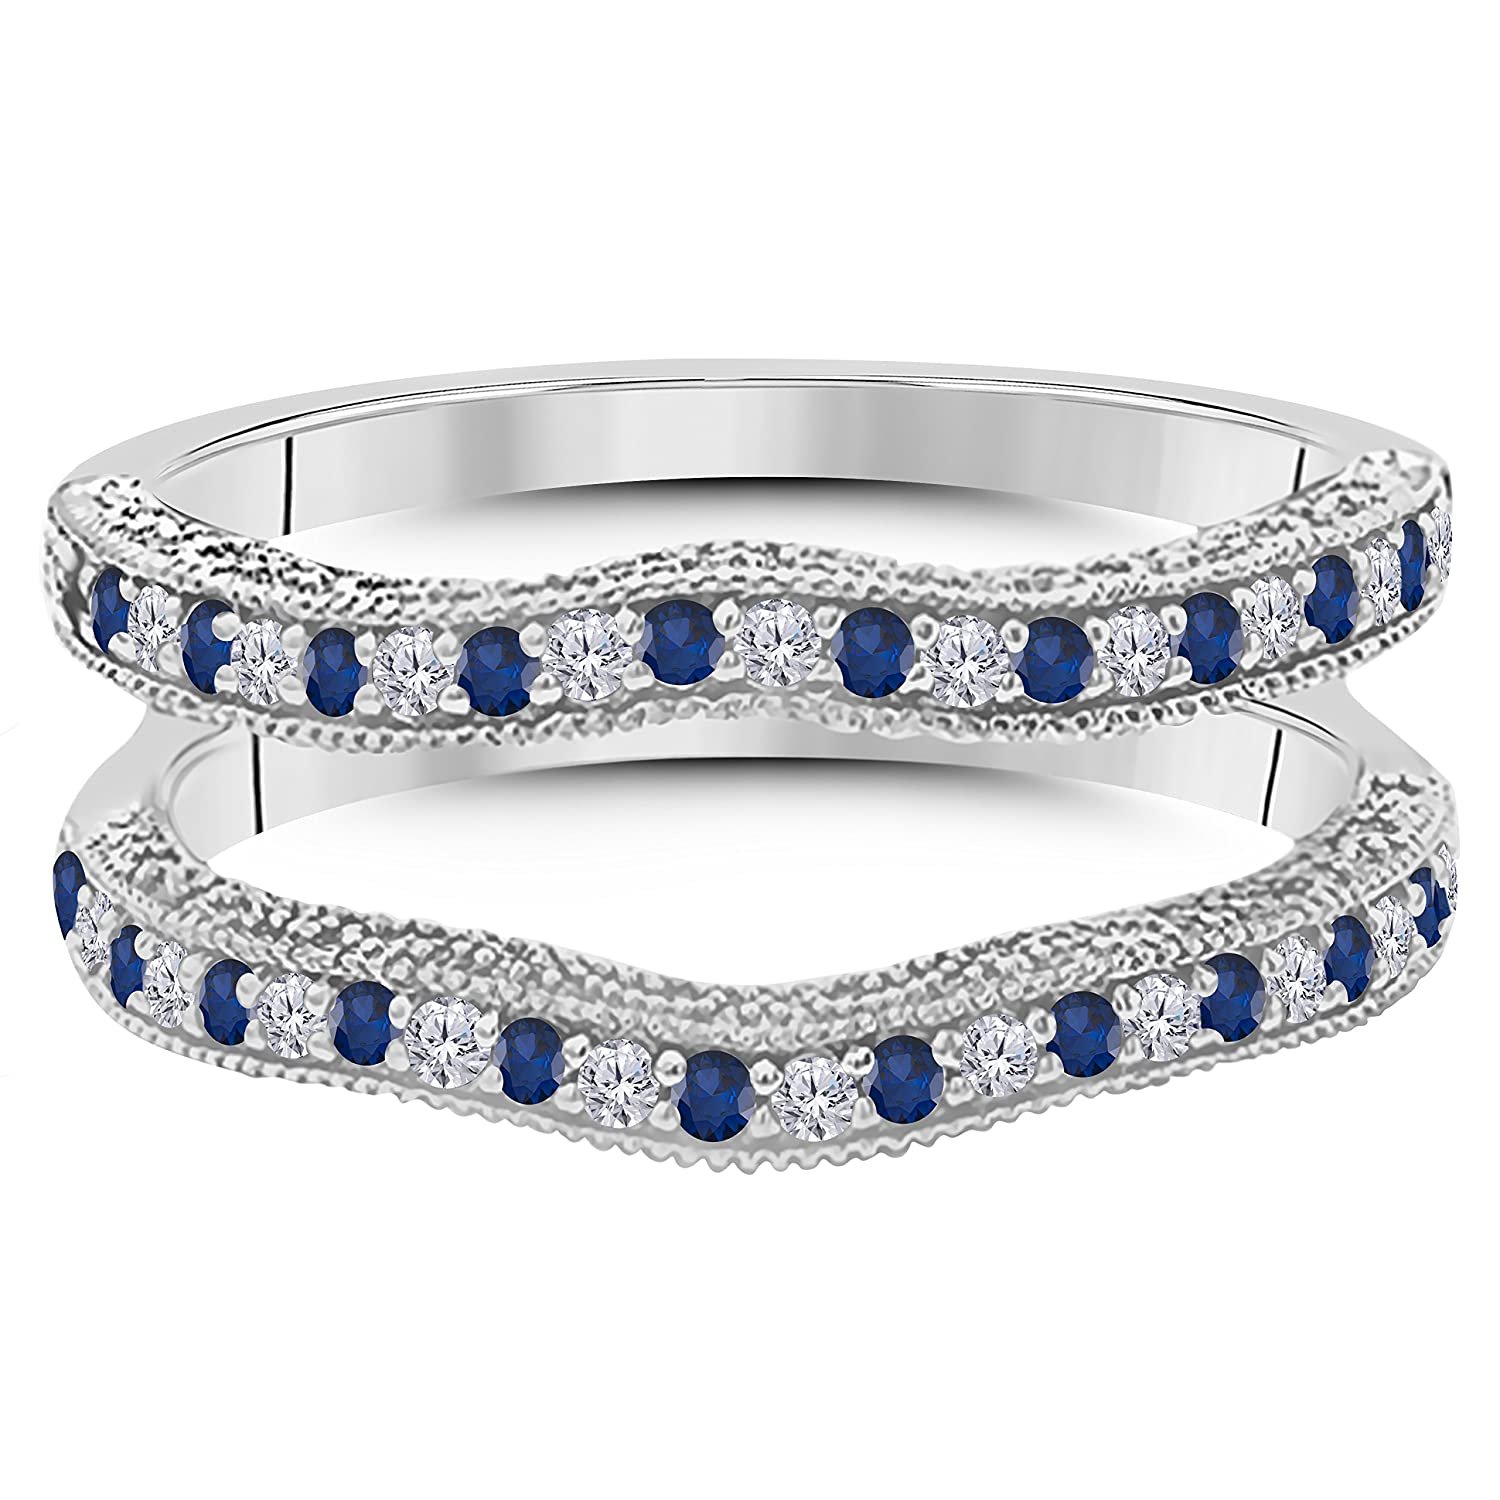 14K White Gold Over Alloy 0.50 ct Round-cut White CZ White CZ Simulated Diamond & Lab Created Blue Sapphire Ring Enhancer Solitaire Ring Guard Silver Gems Factory SGF-nm-29